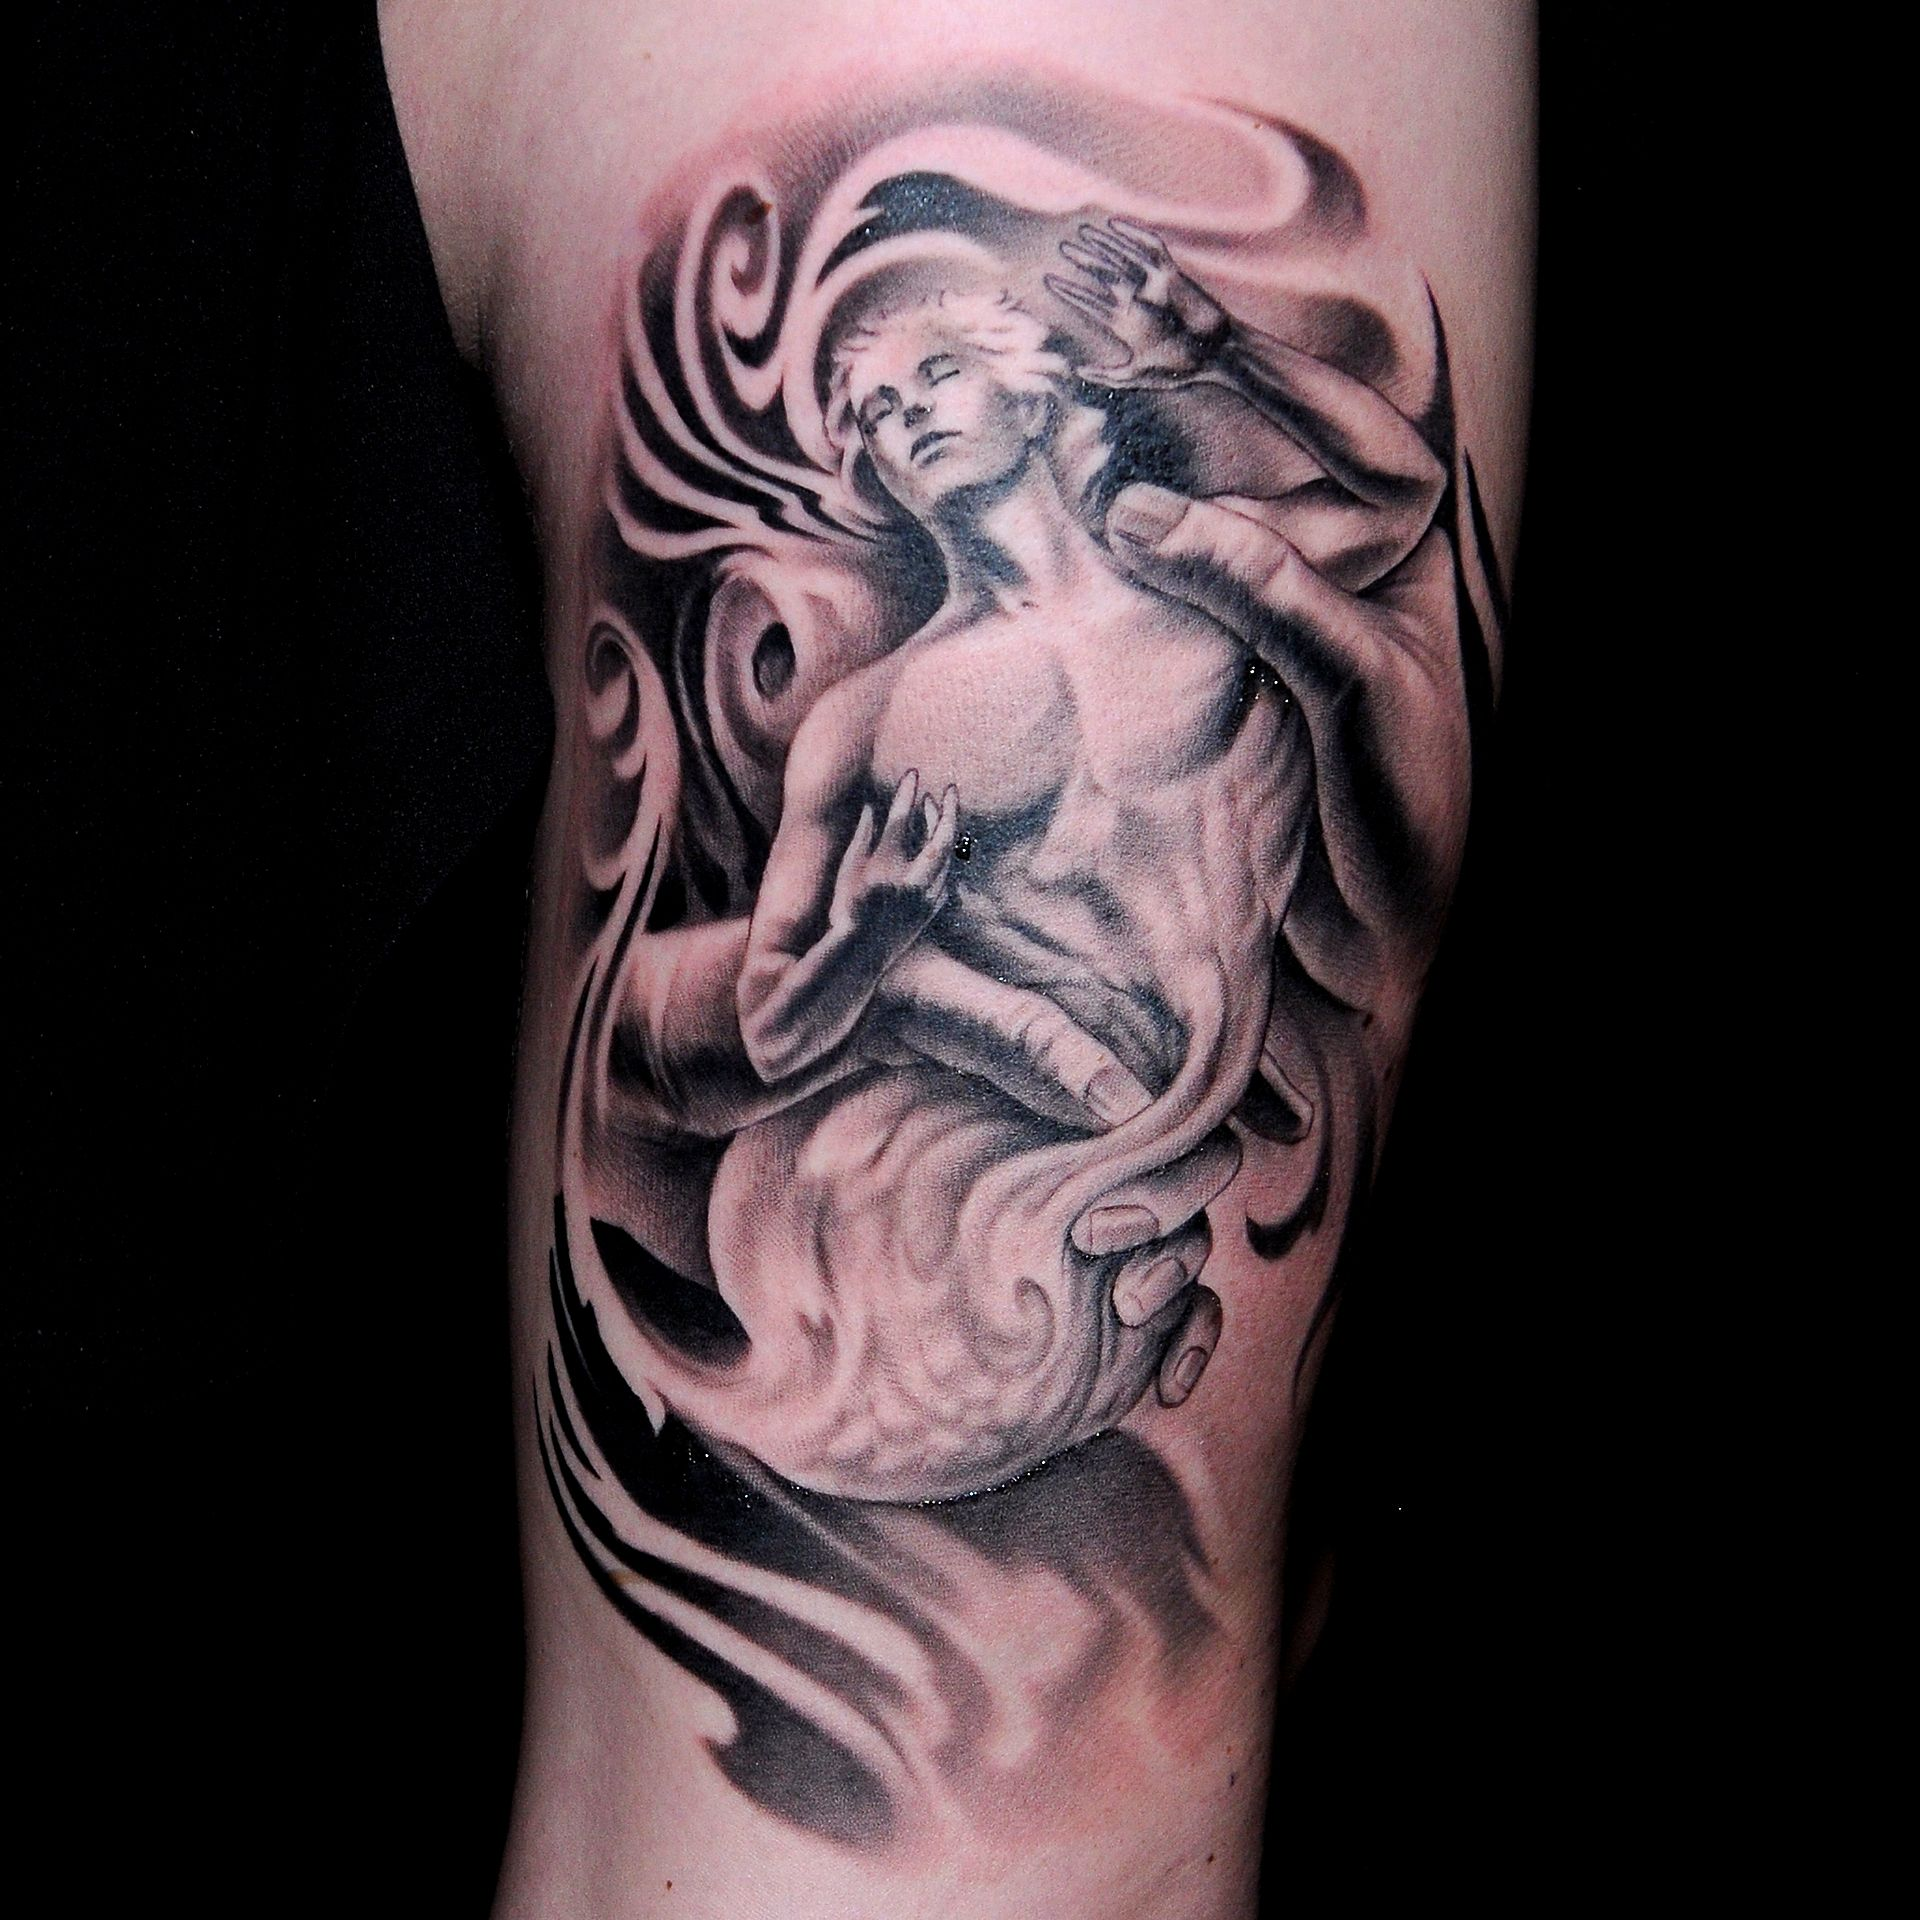 Bien-aimé Image Tattoo - Galerie Tatouage PH37